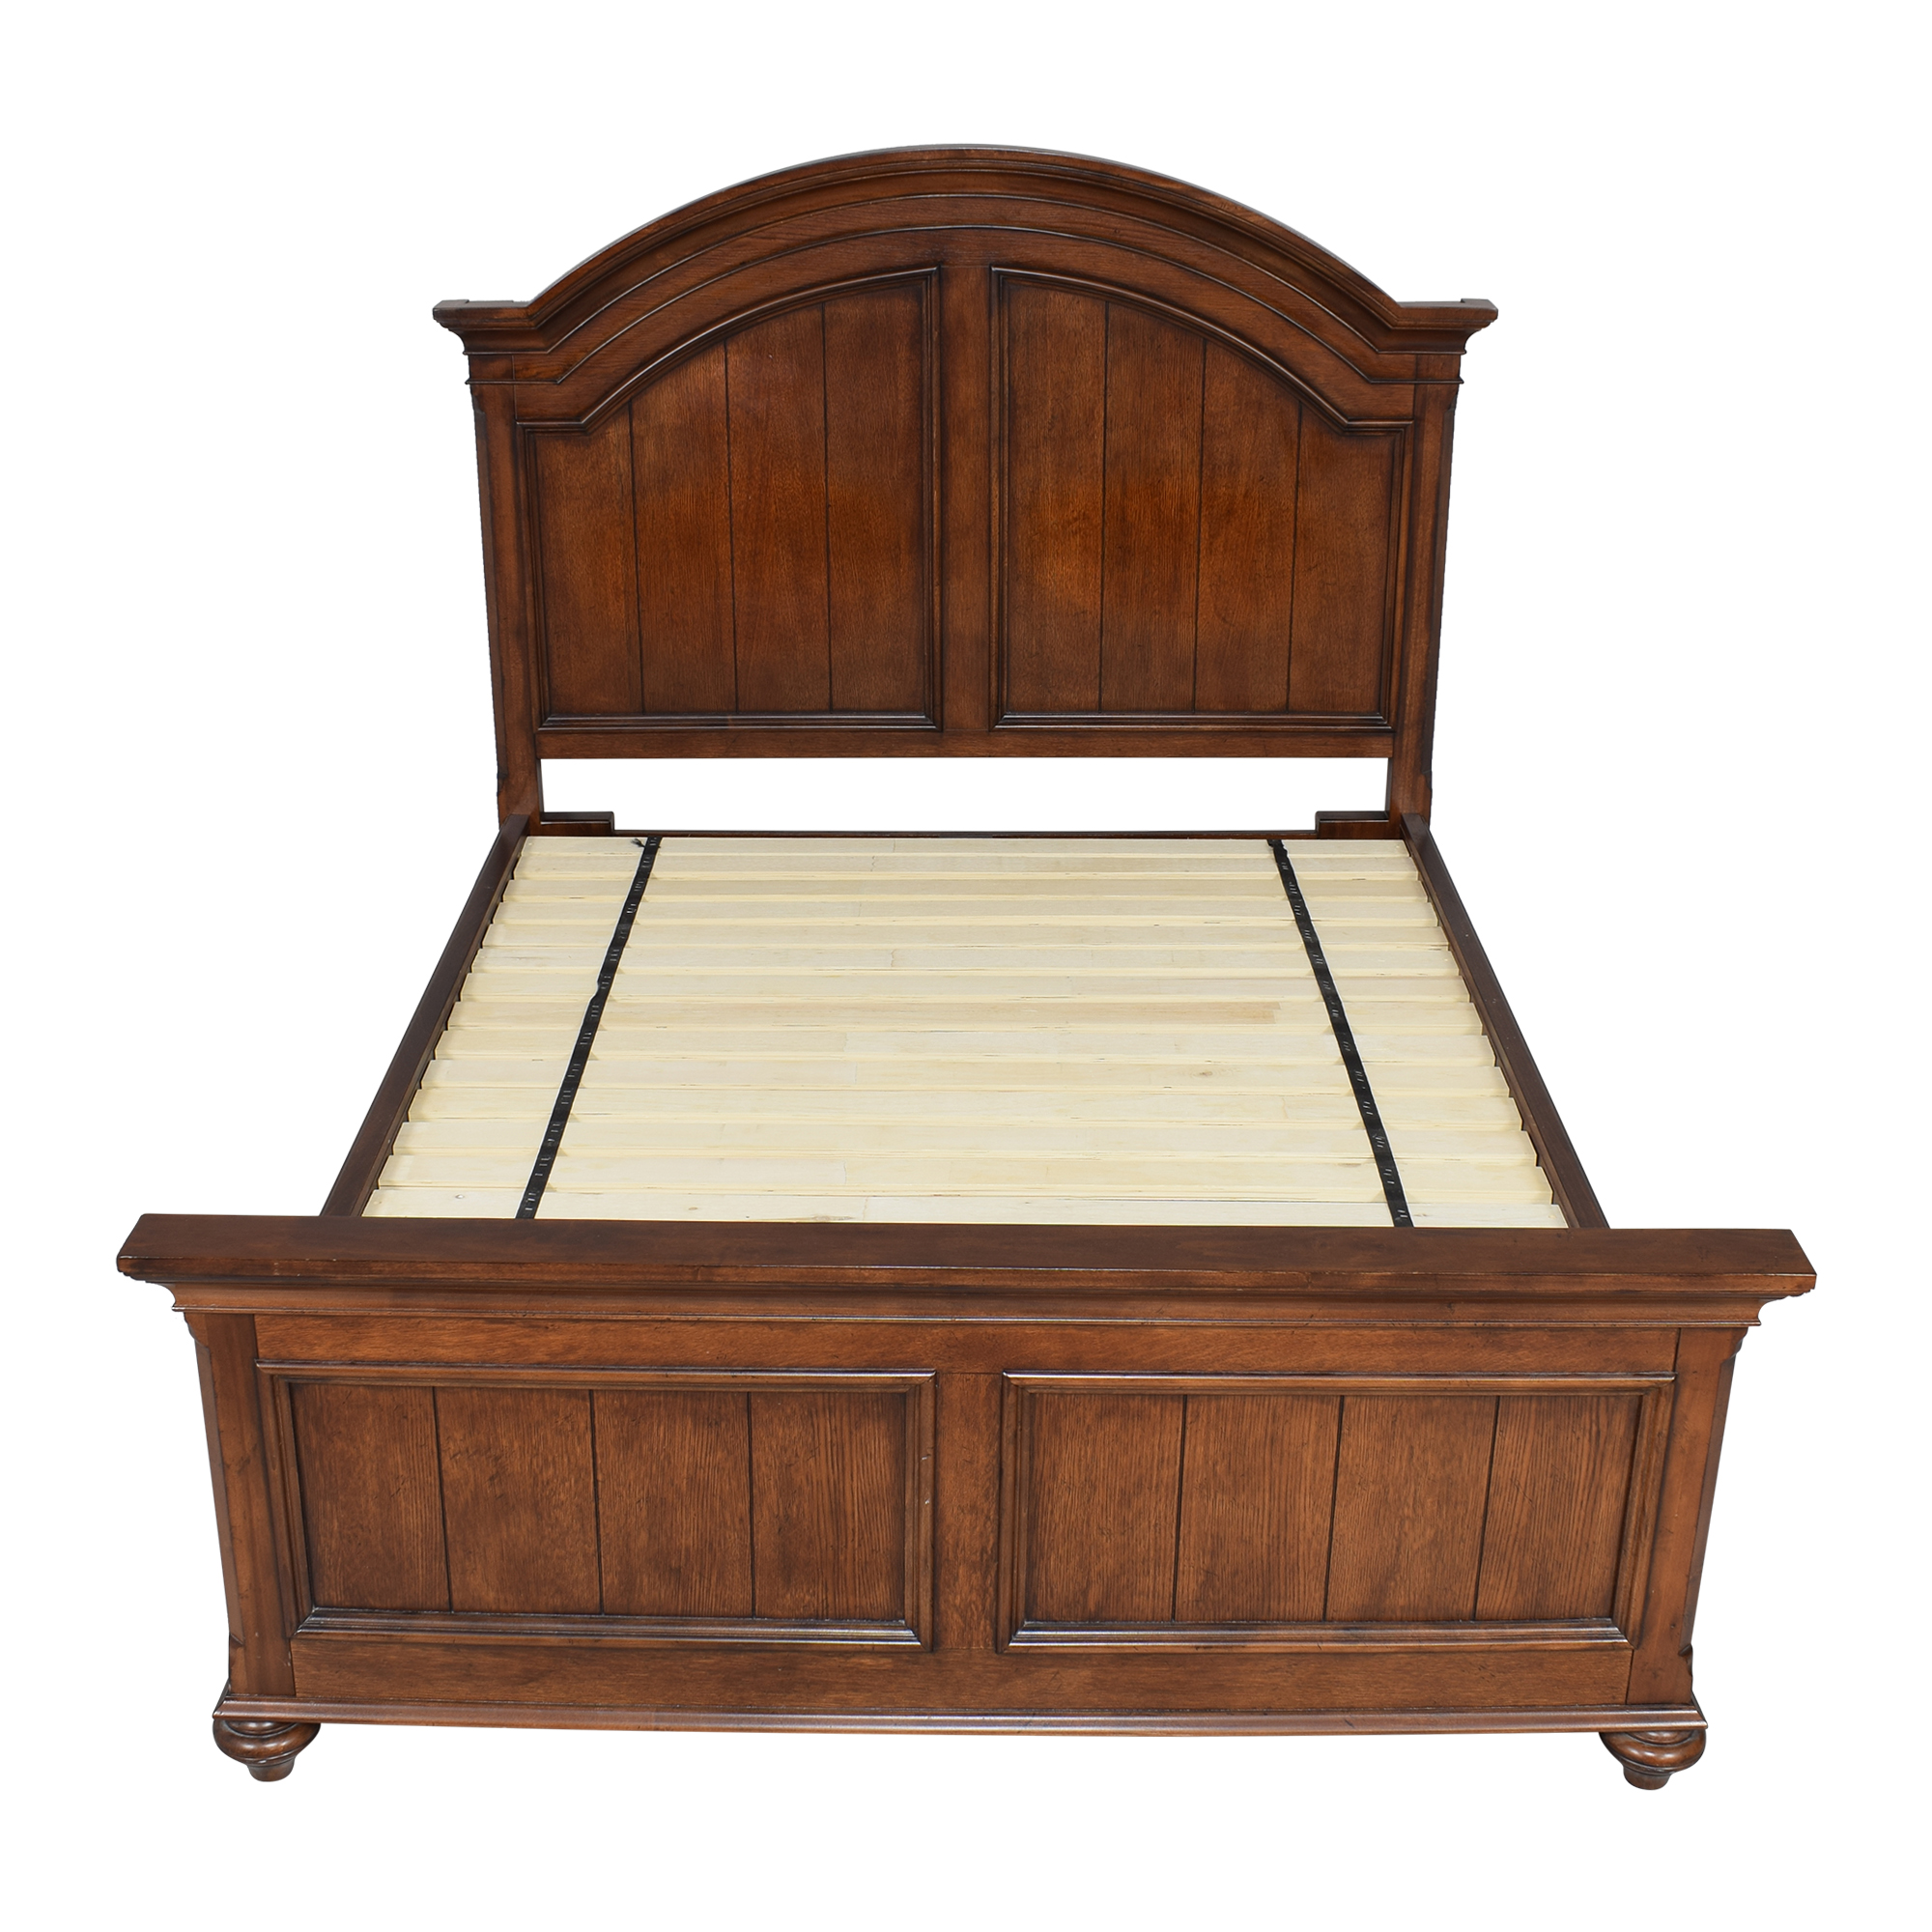 Raymour & Flanigan Raymour & Flanigan Legacy Storage Queen Bed nyc